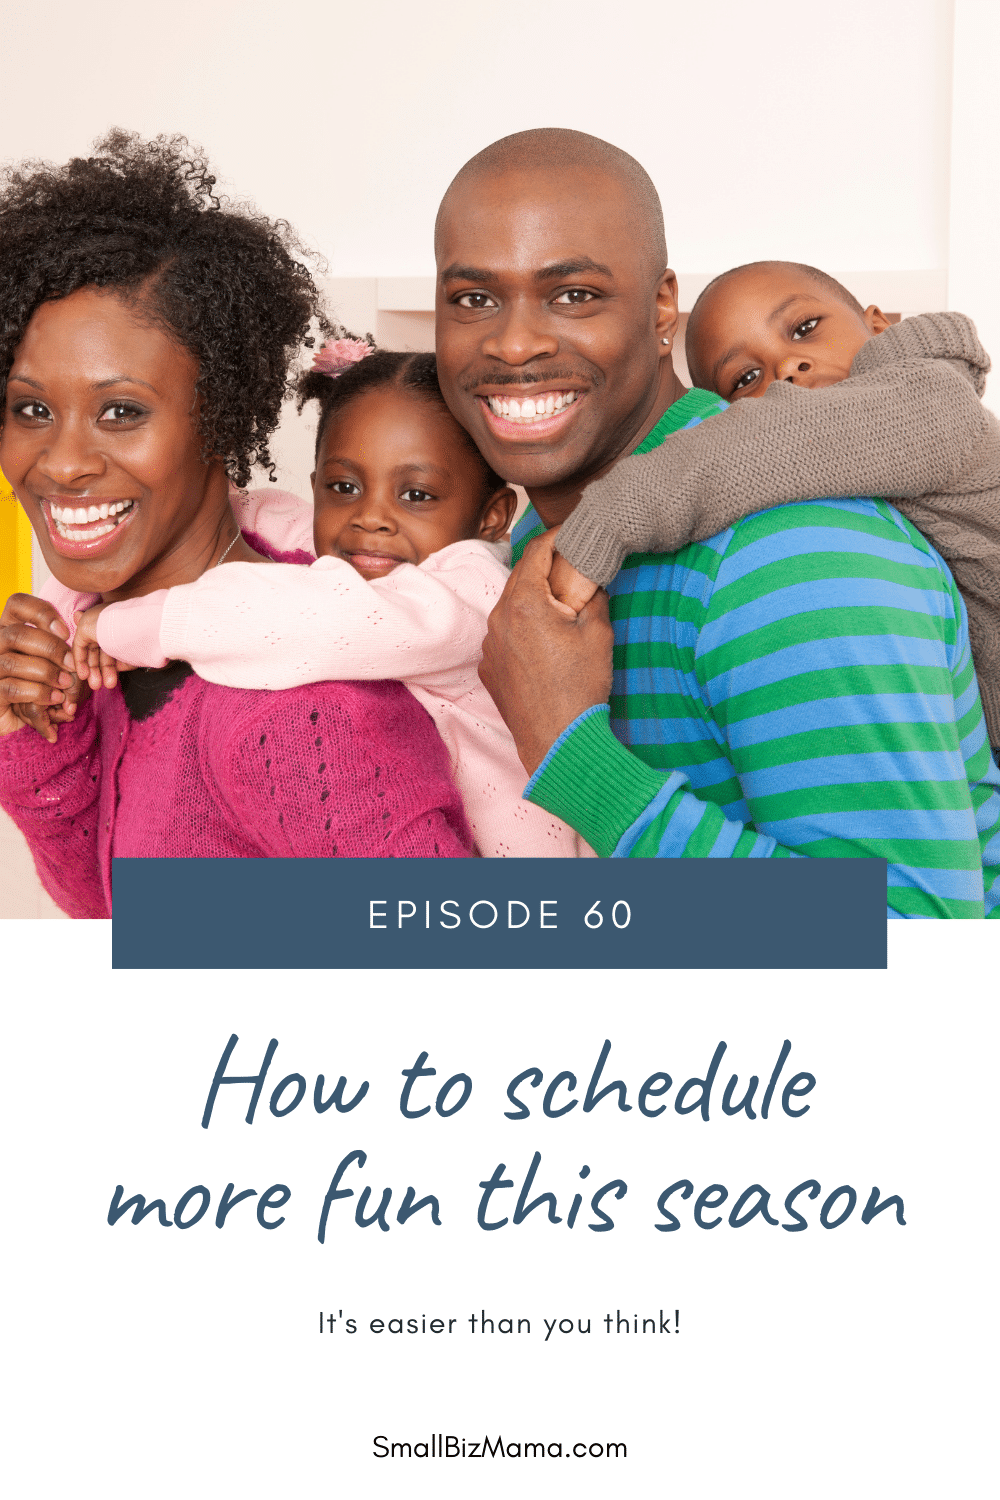 Episode 60 How to schedule more fun this season. It's easier than  you think.